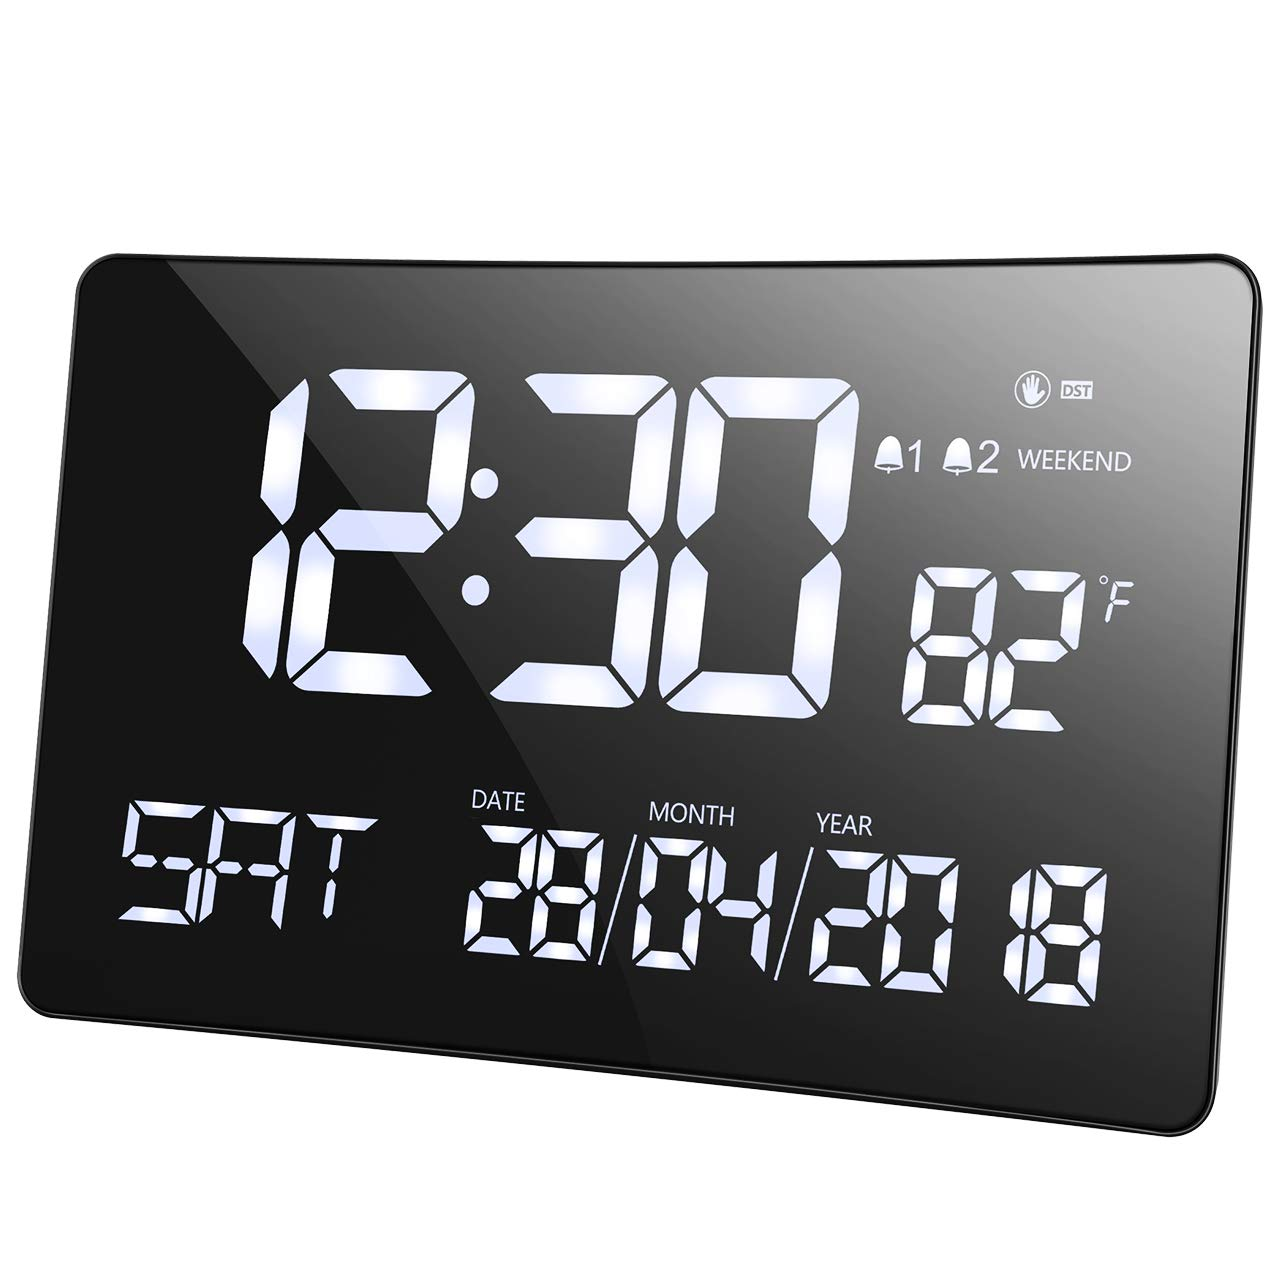 Alarm Clock, Mpow Digital Alarm Clock, 11'' Large Curved-Screen Clock, Light-Sensor, Dual-Alarm, Multifunctional Clock with Date, Day of Week, Indoor Temperature, for Home, Office,Adult, Elderly